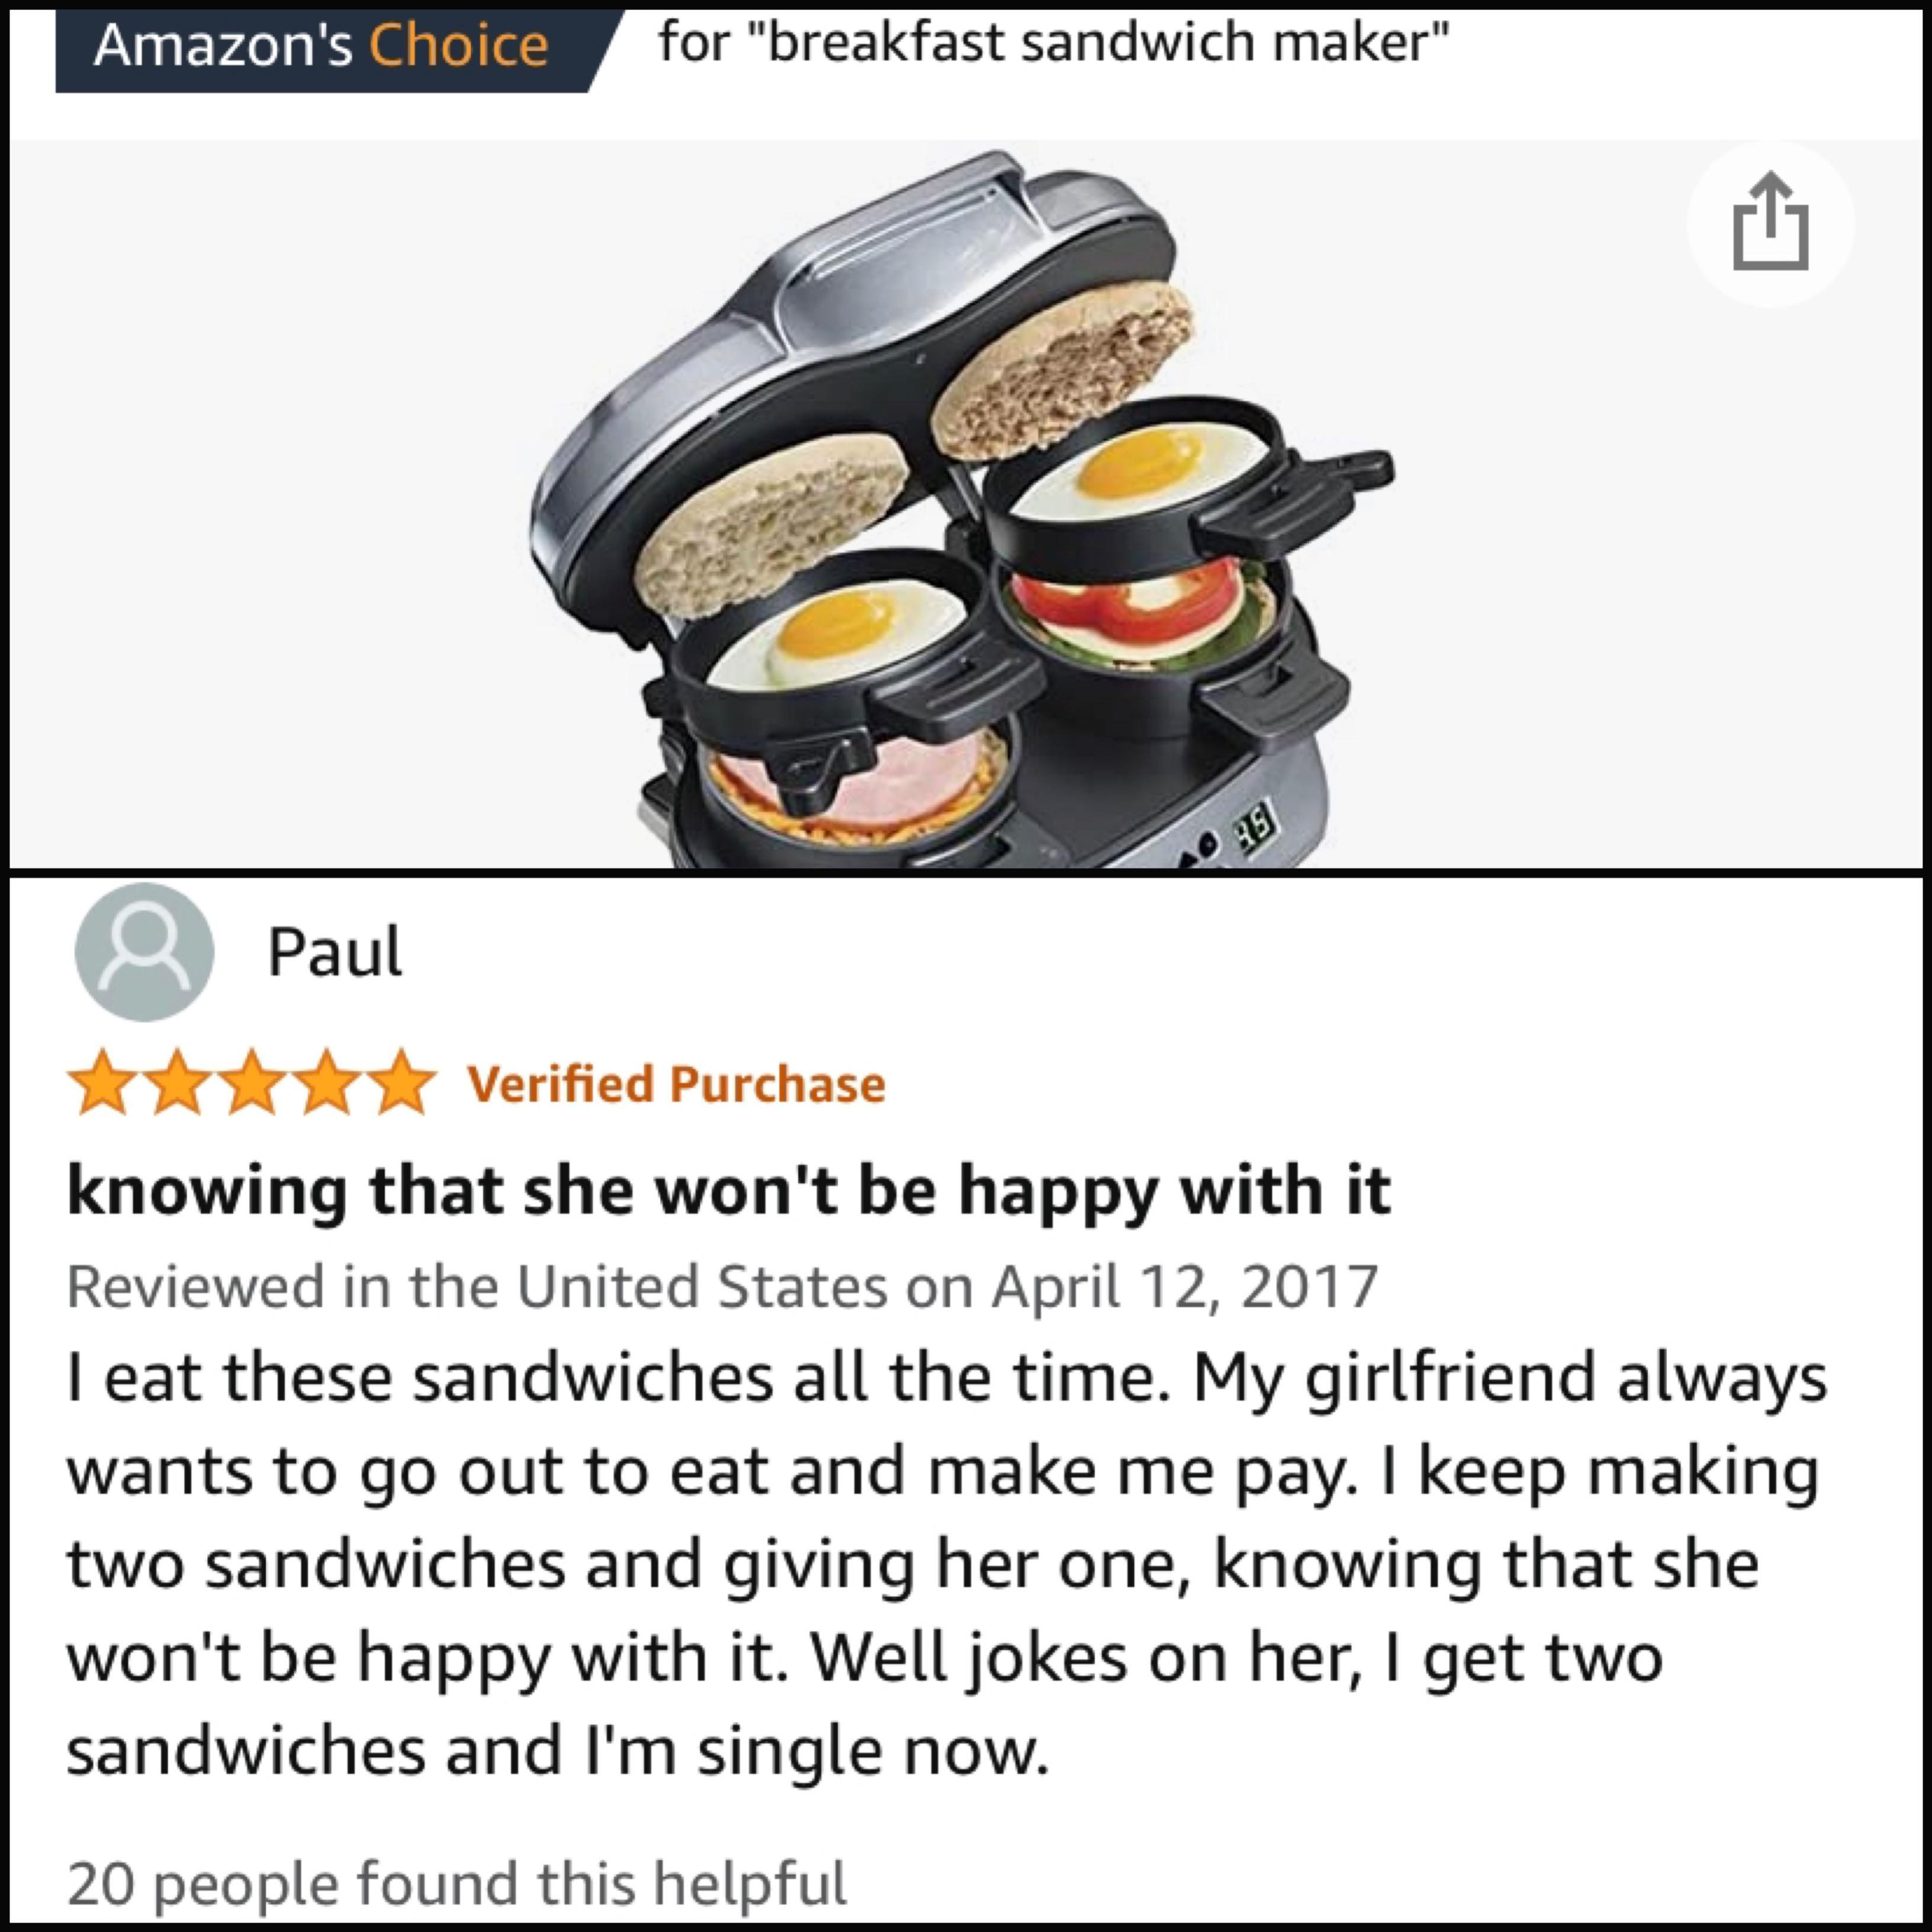 Was looking for a sandwich maker, MVP Paul has sold me on this one